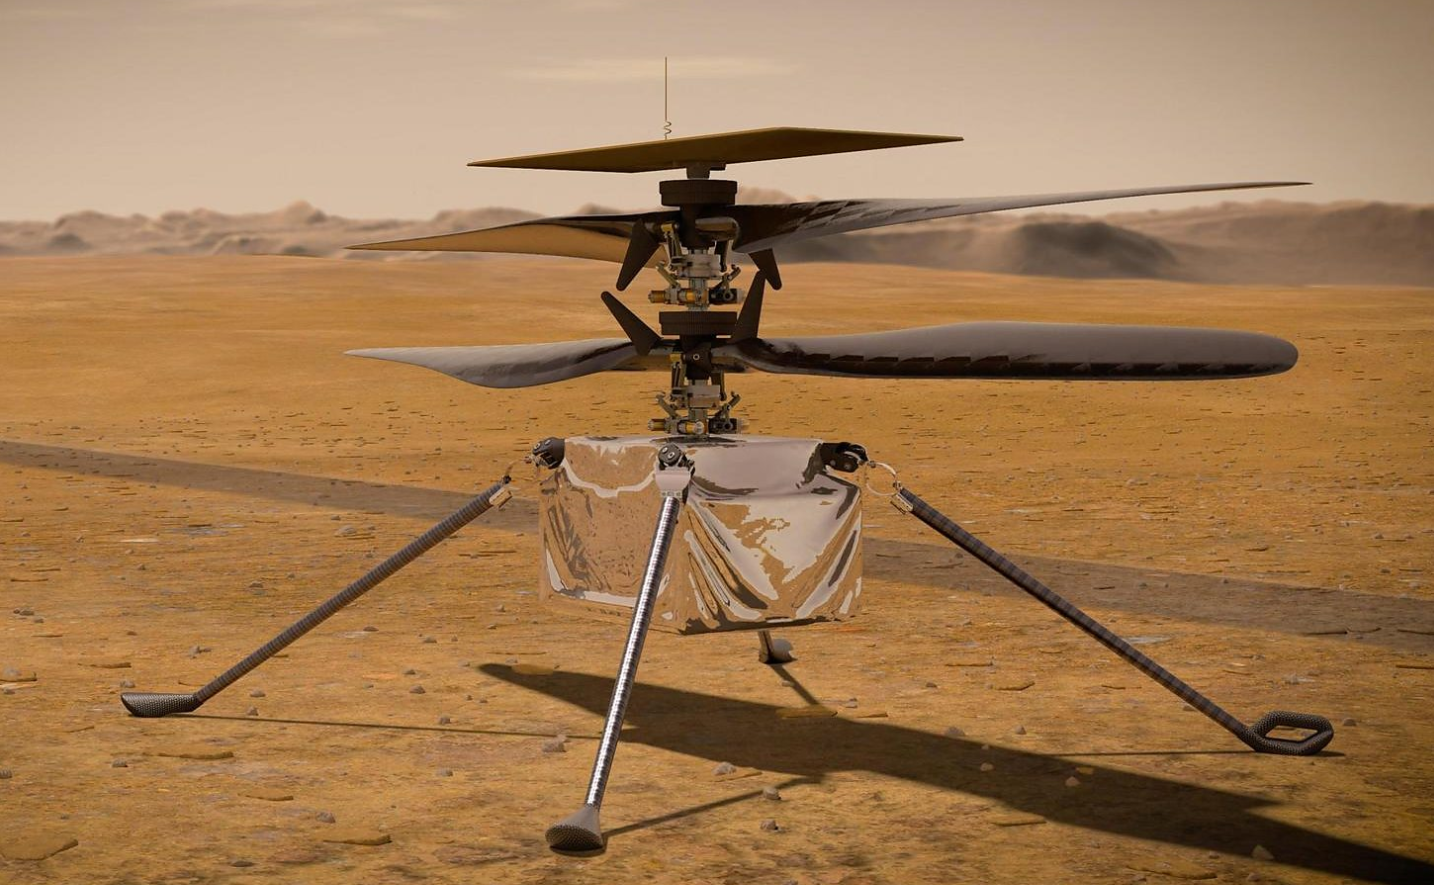 Helicopet set to be the first aircraft to fly on another planet.